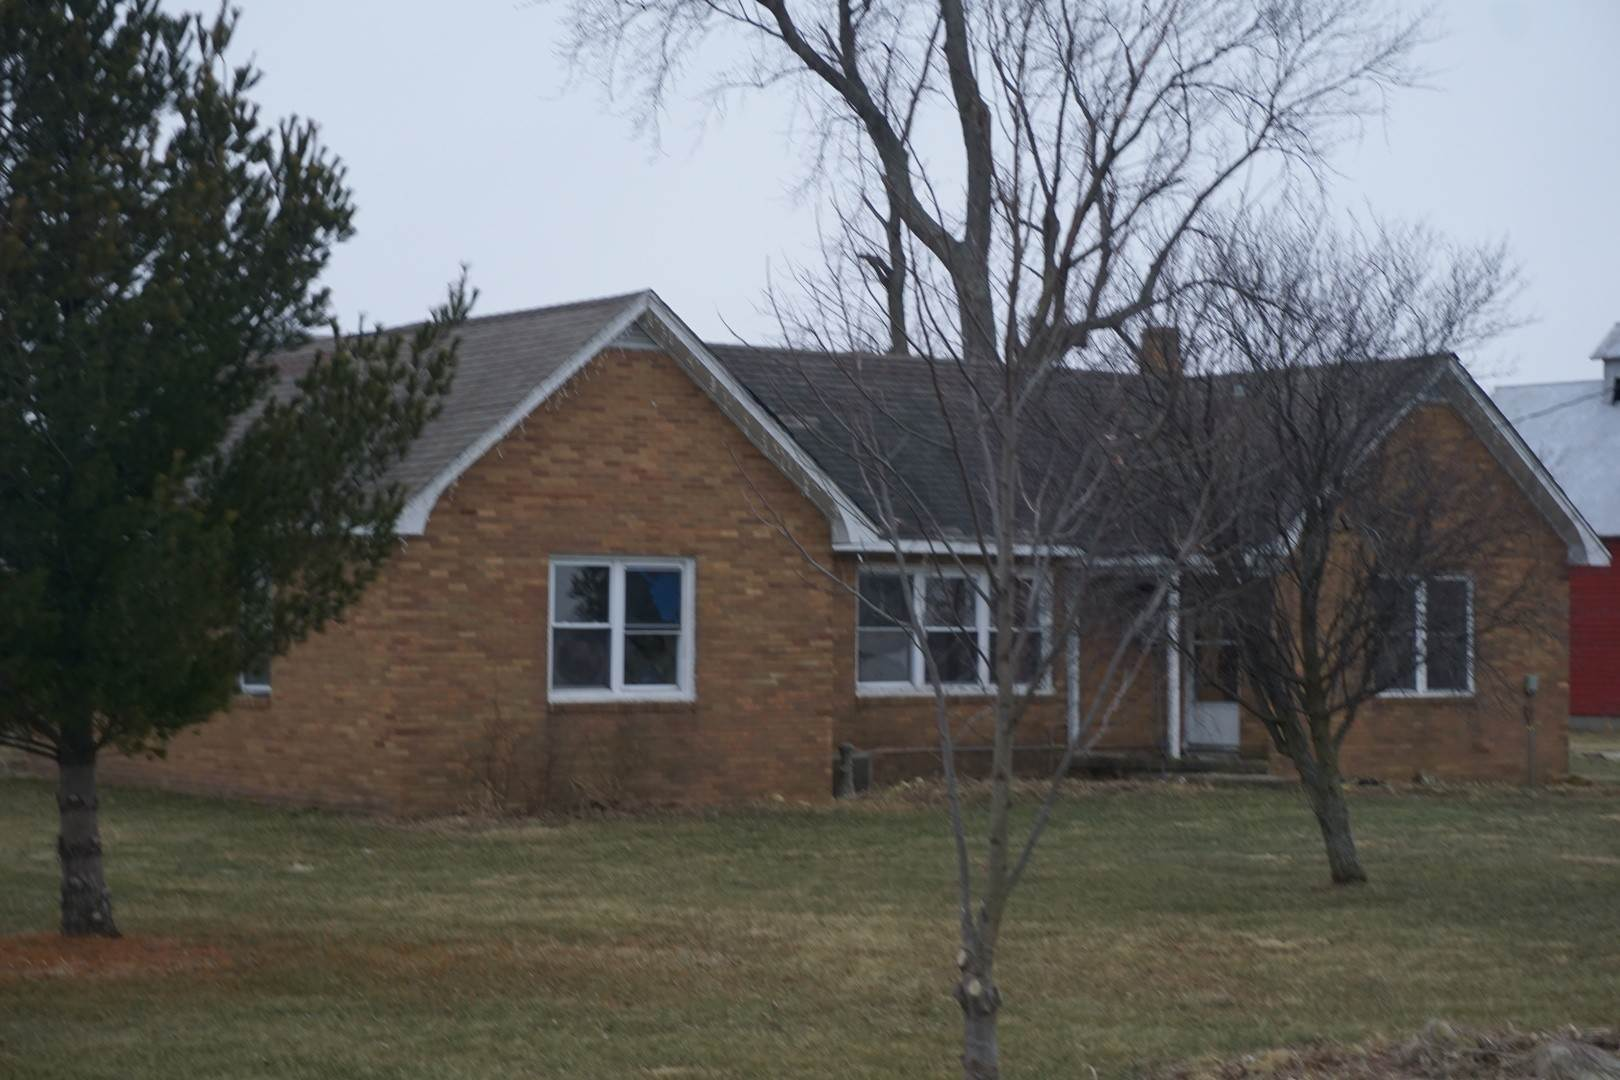 Single Family Homes for Sale at 1991 E 3000 North Road Martinton, Illinois 60951 United States